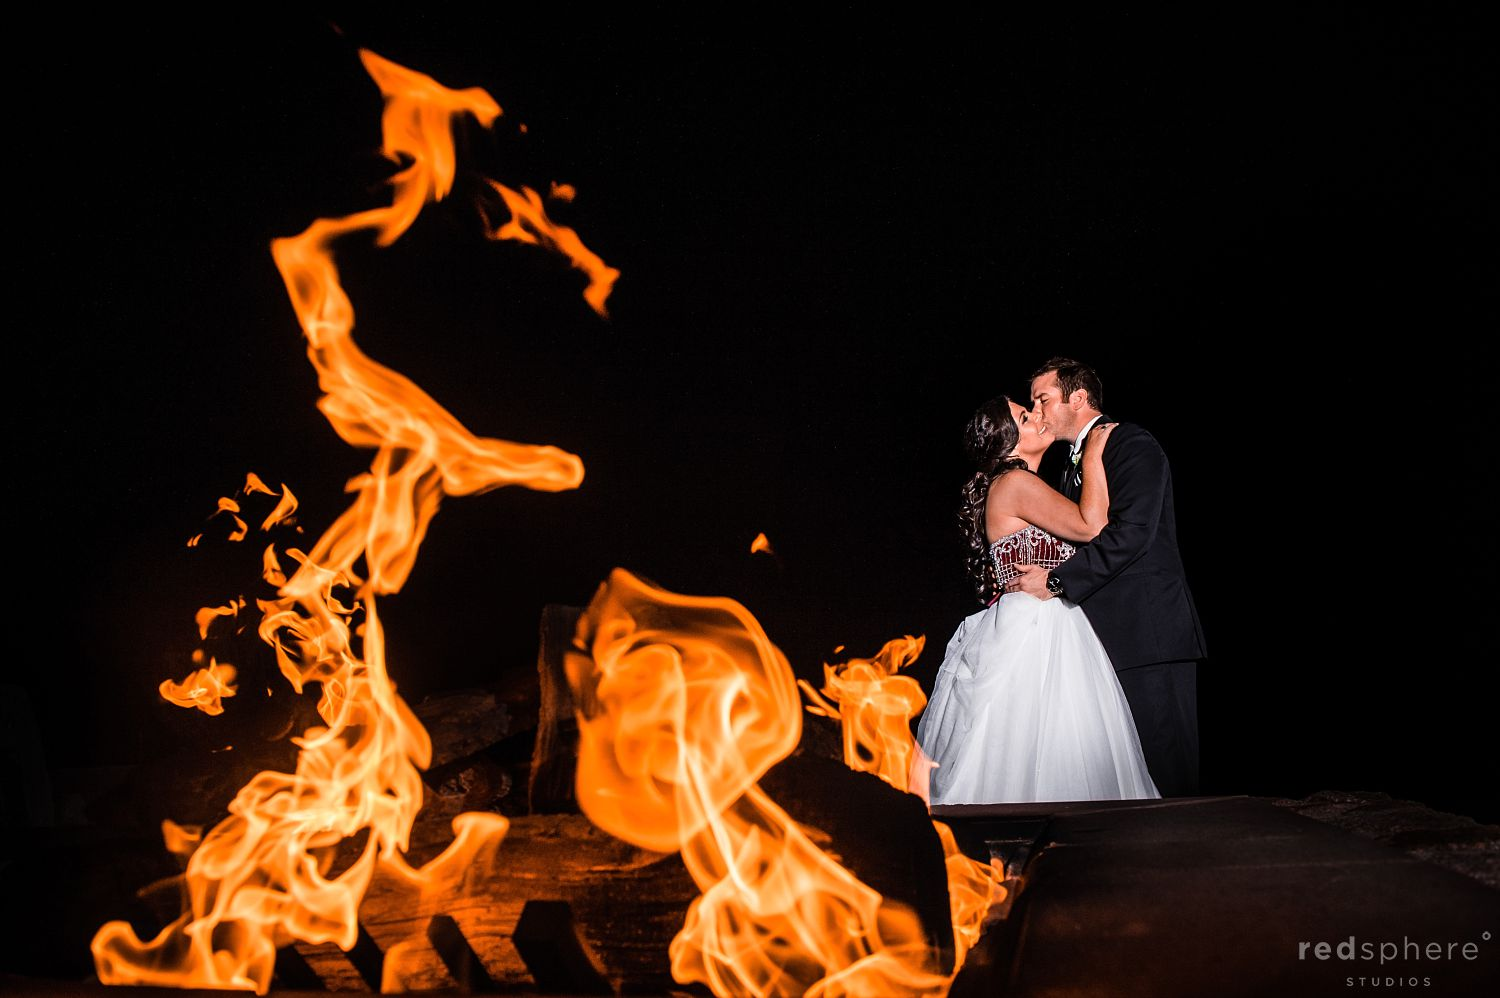 Bride and Groom Kiss Next to a Fireplace